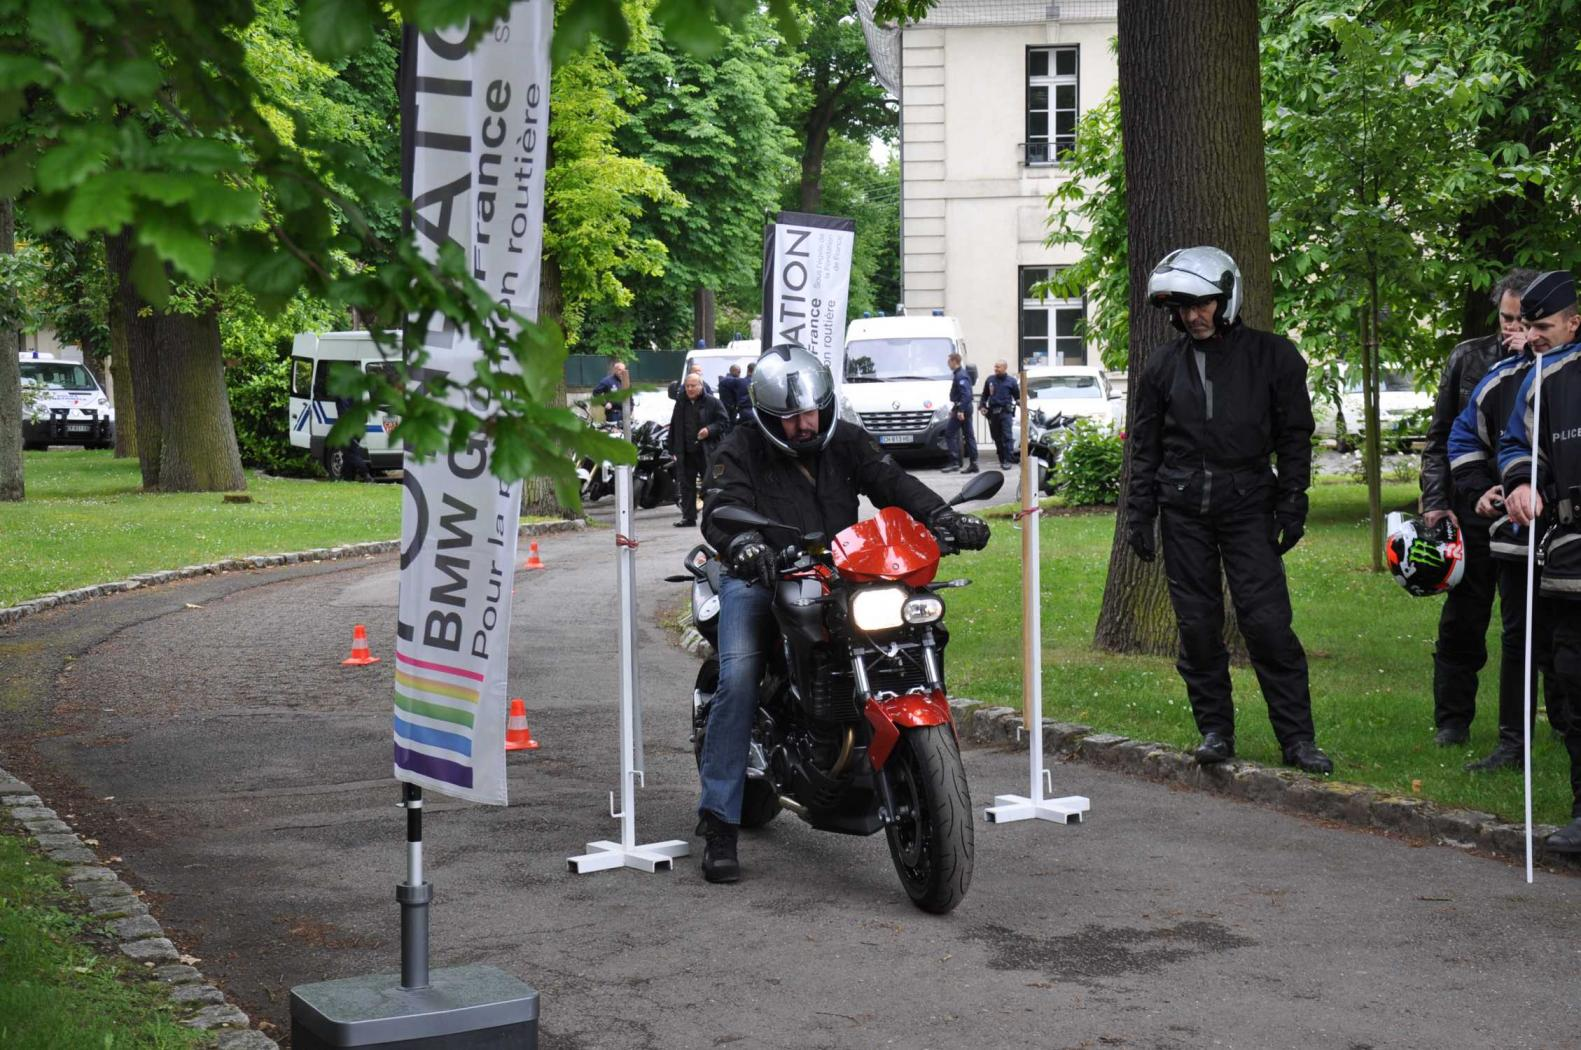 Stage-de-securite-routiere-BMW.jpeg